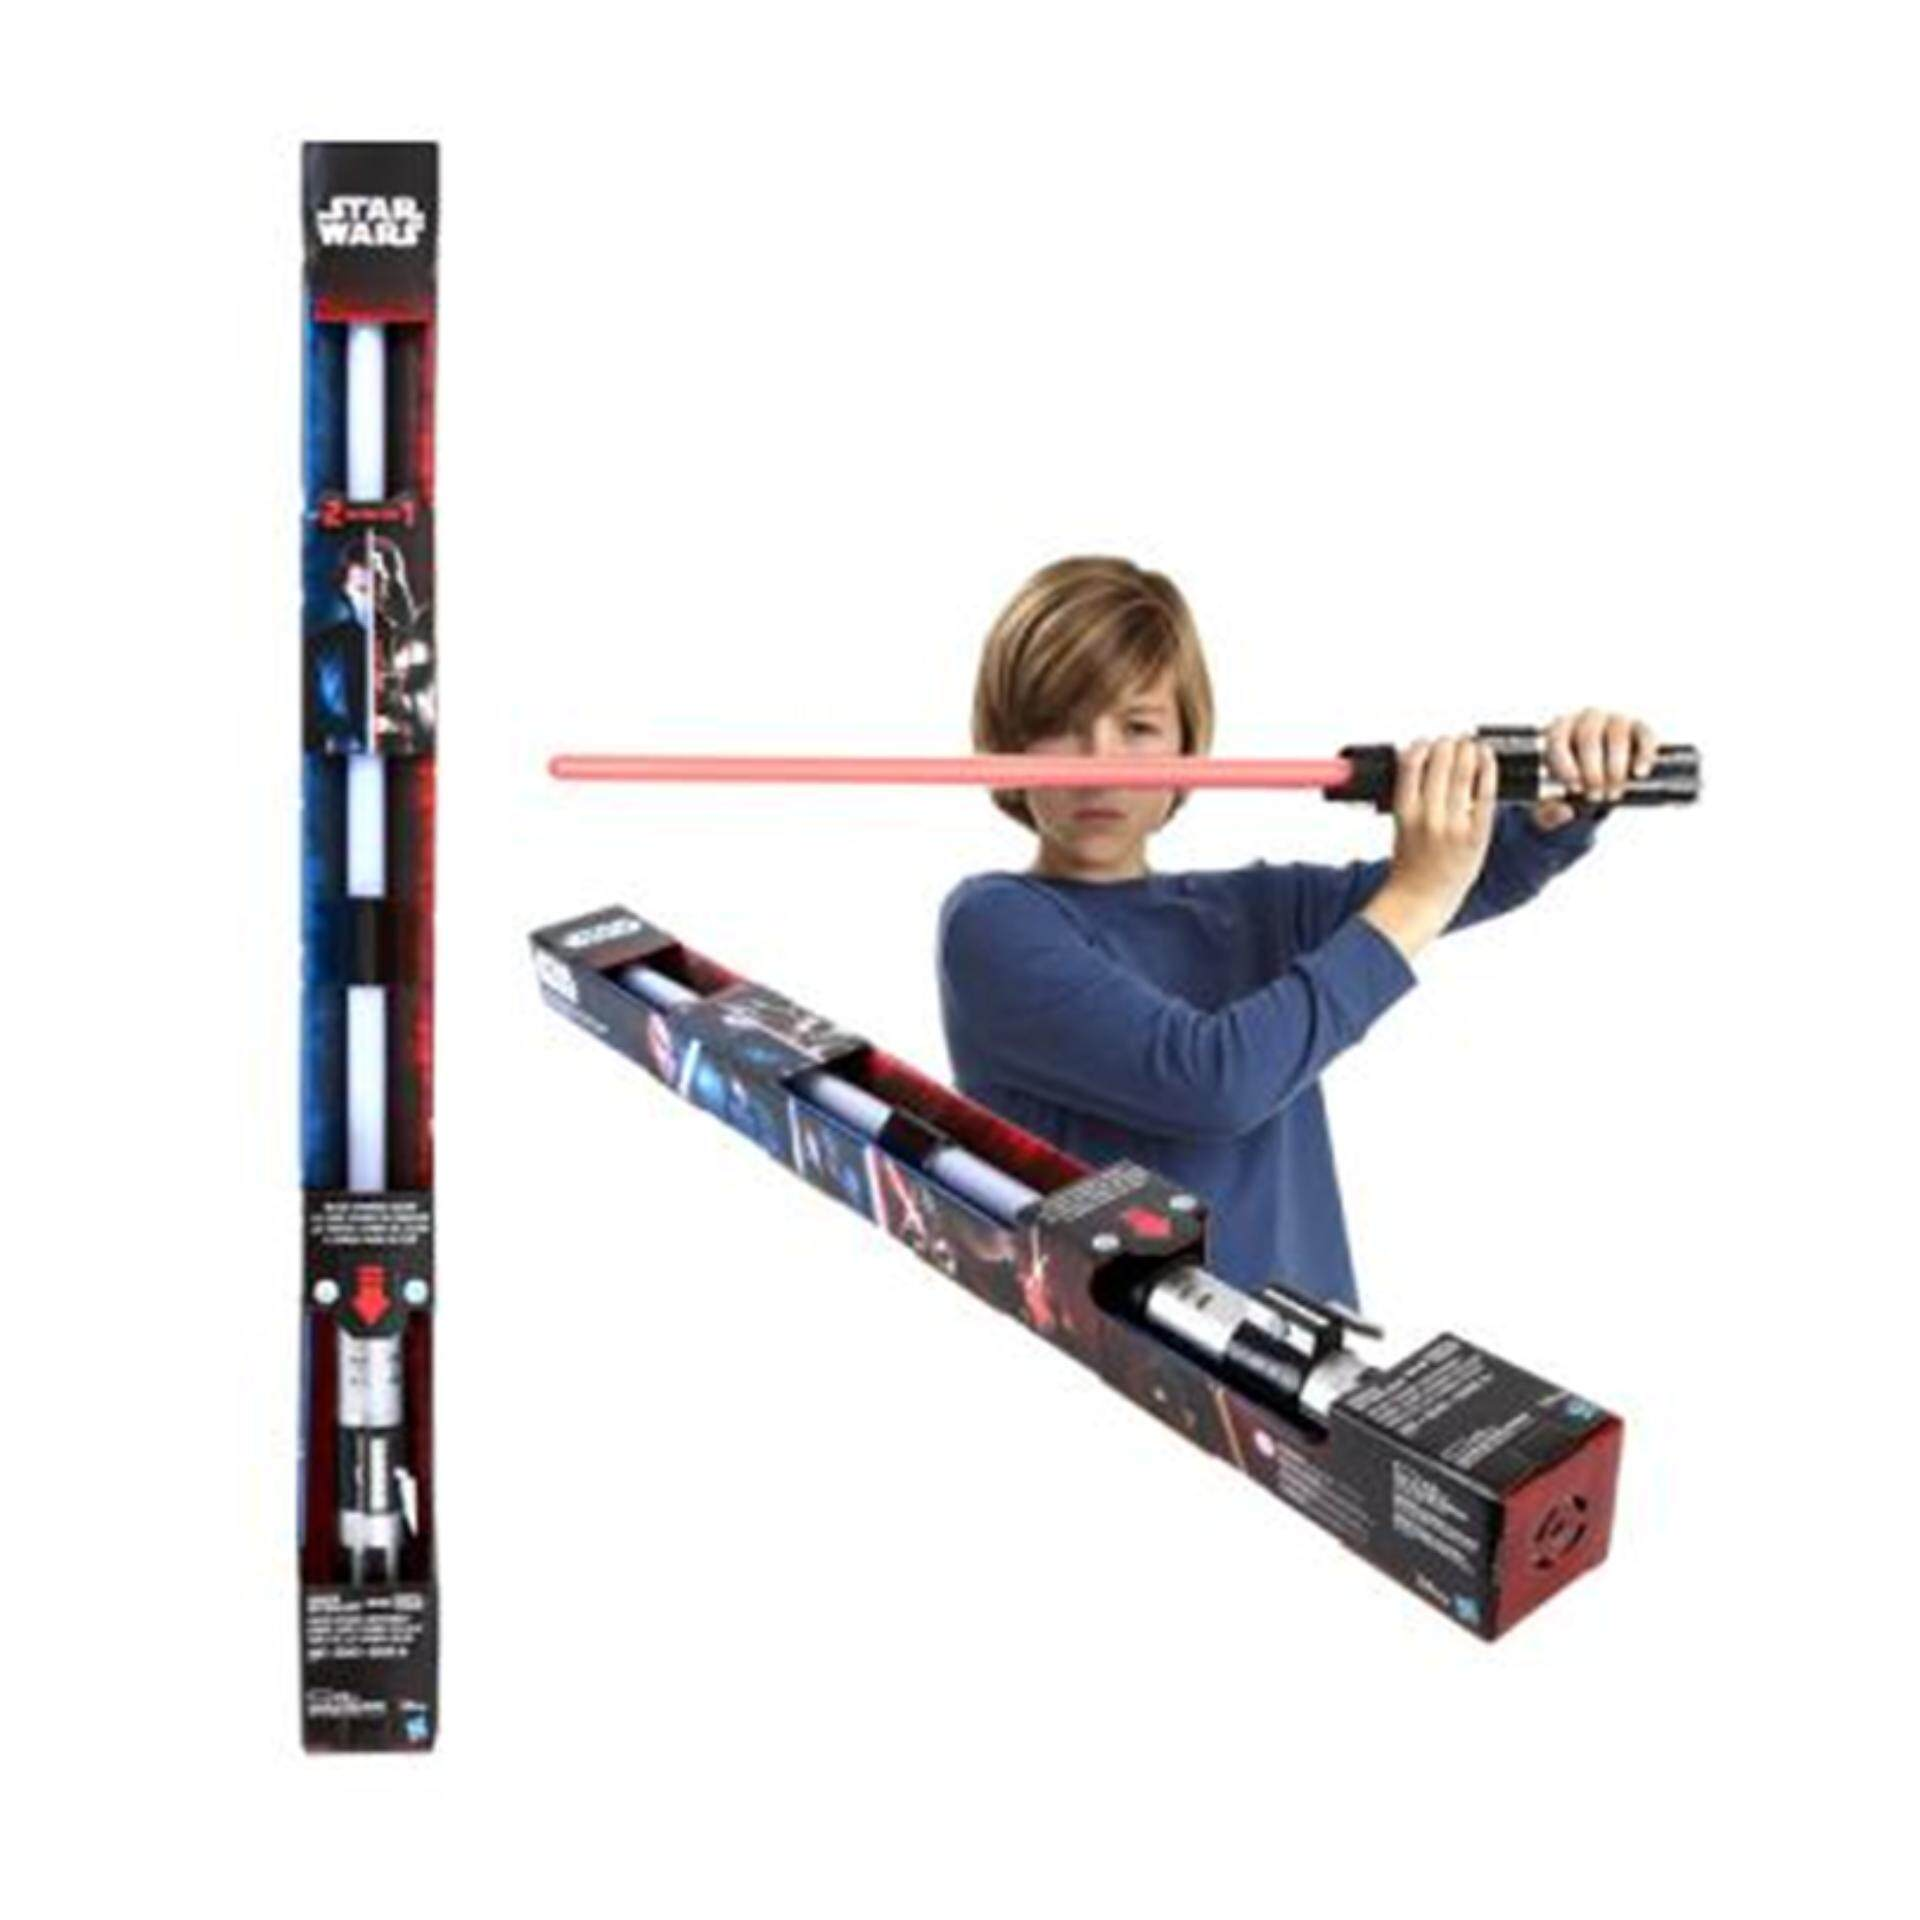 Disney Star Wars E3 Anakin To Vader Colour Change Lightsaber - Blue & Red Colour Toys for boys